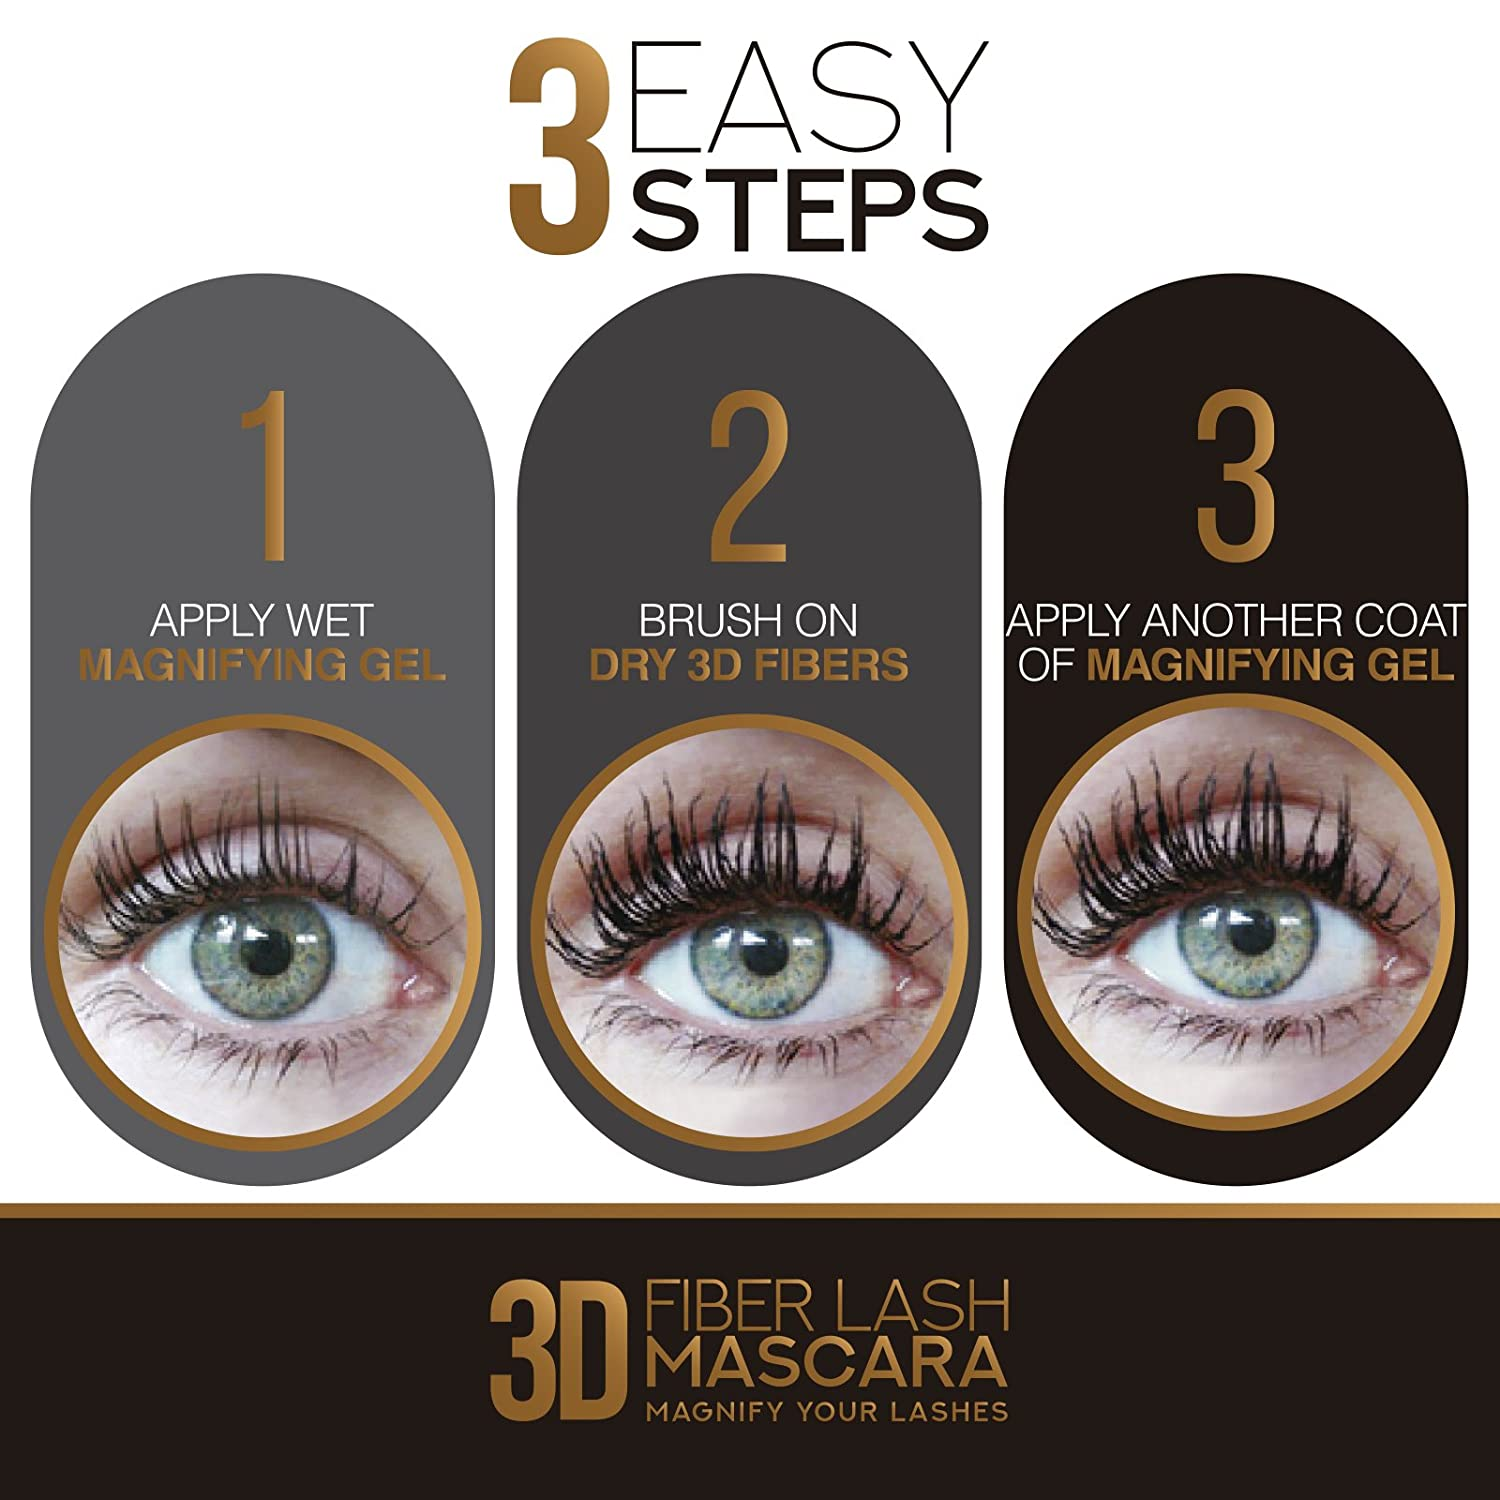 d107b88719b Amazon.com : 3D Fiber Lash Mascara - Best Rated for Voluminous Long Lashes  - Gives 4D Eyelash Extension Effect for Thickening & Lengthening -  Paraben-Free ...